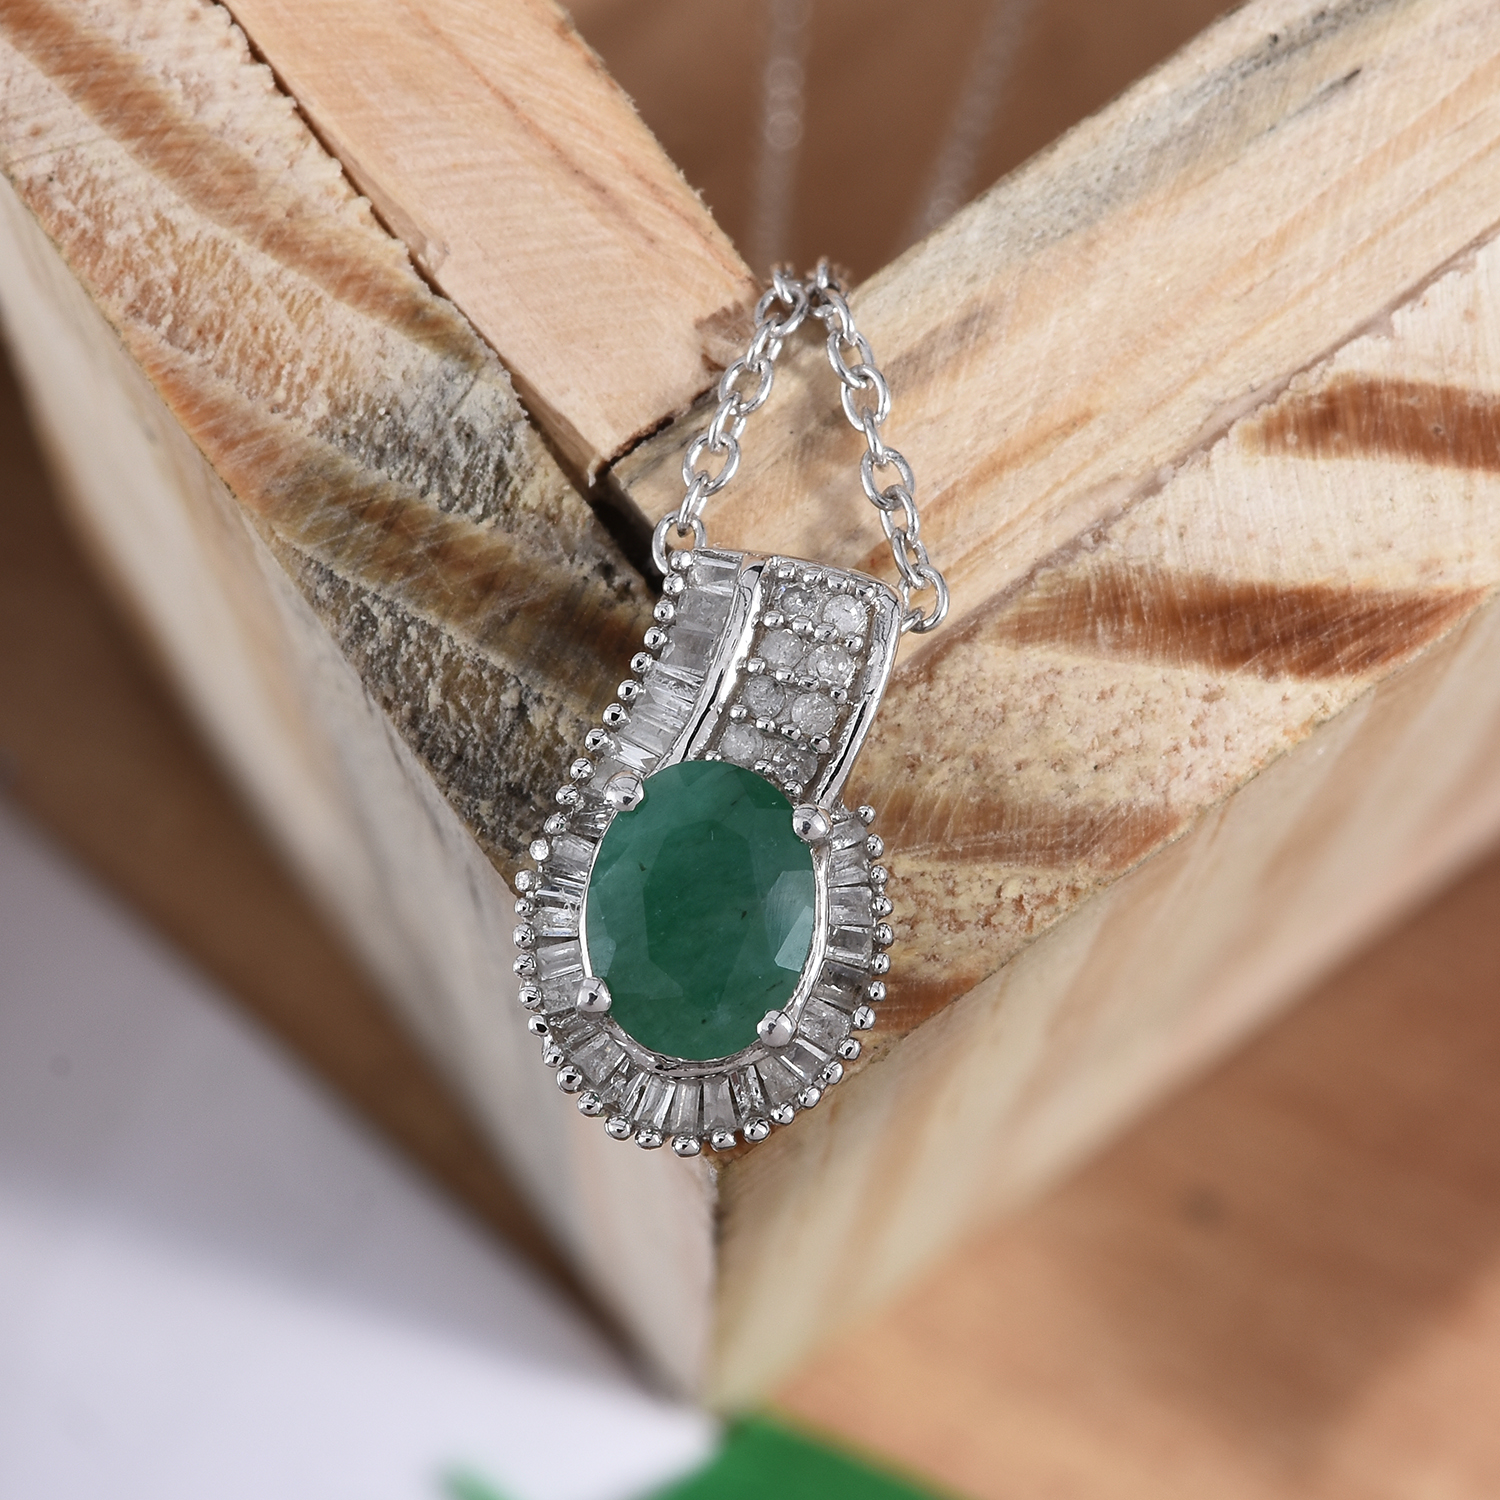 Emerald pendant draped over wooden frame.